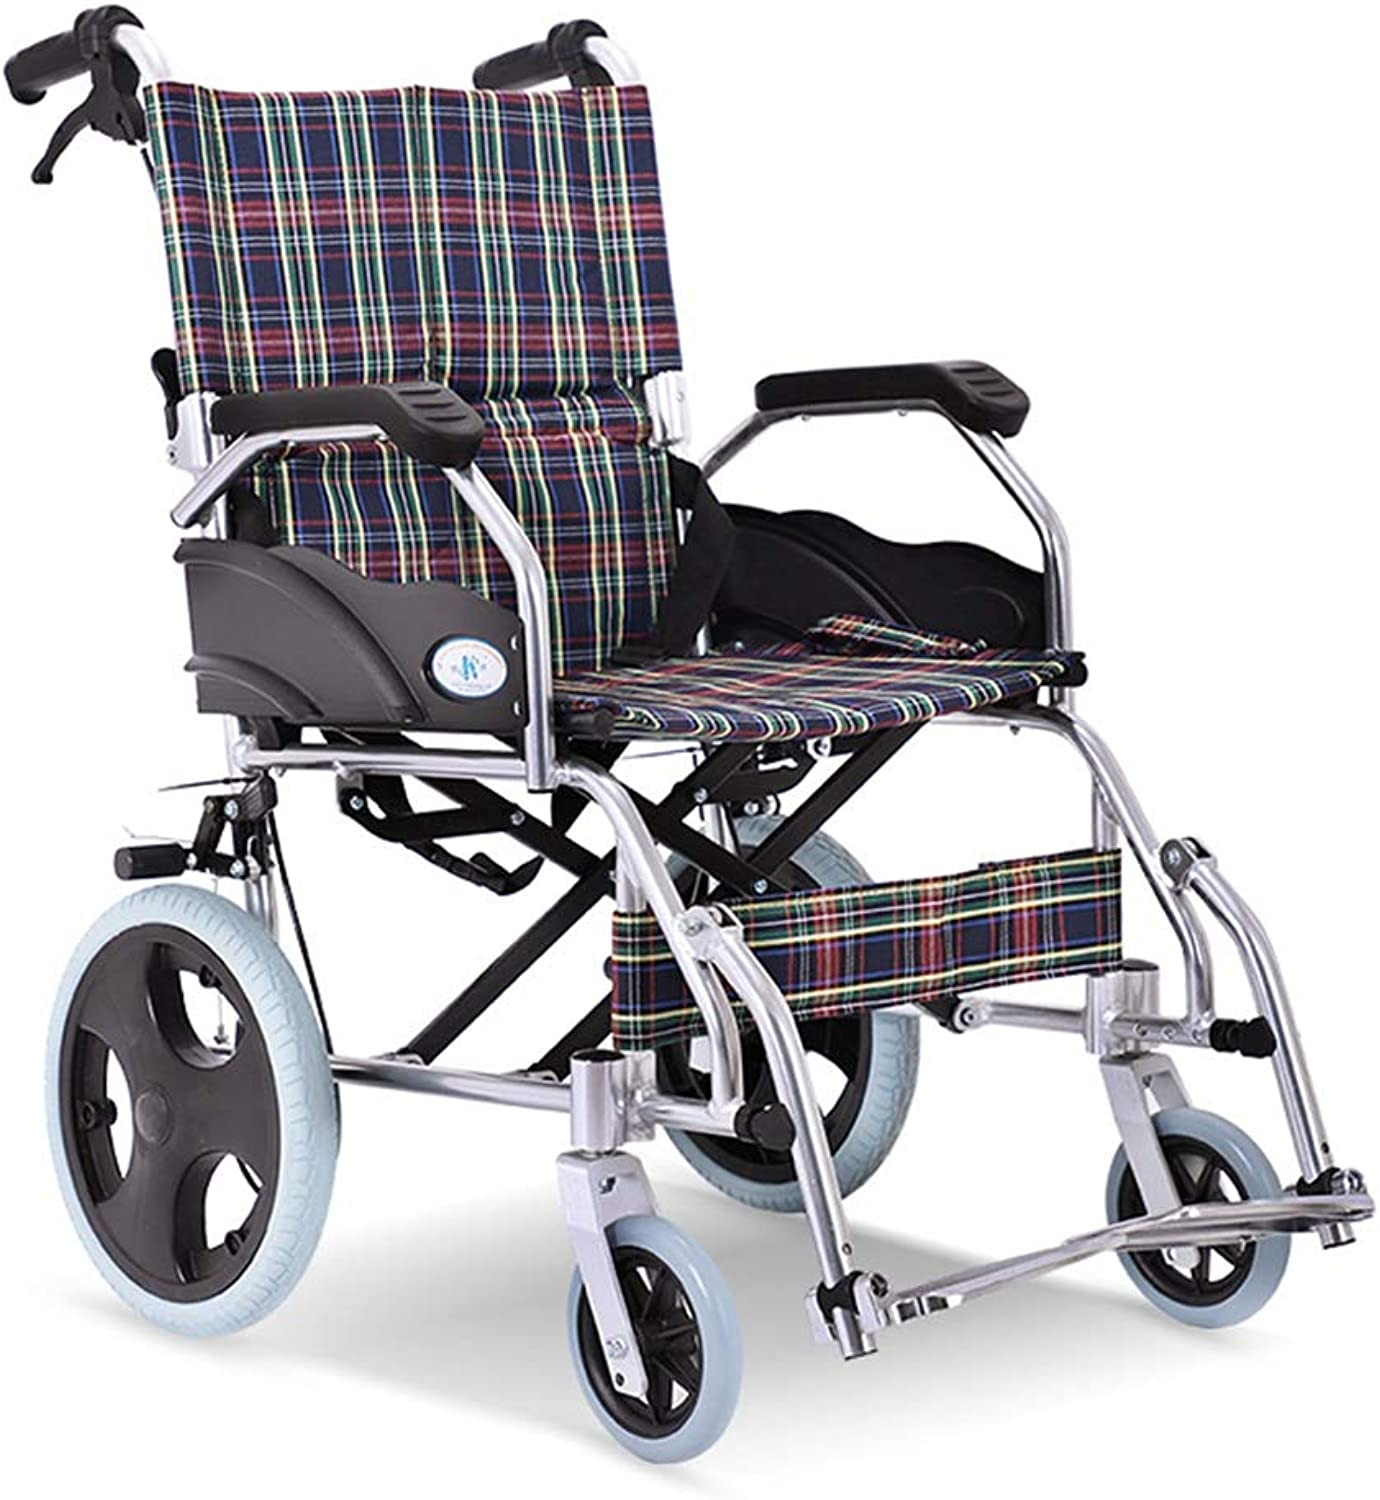 Aluminum Alloy Wheelchair Folding Wheelchair UltraLightweight Elderly Chair Old People's Trolley Transport Chair Loading Weight 100kg